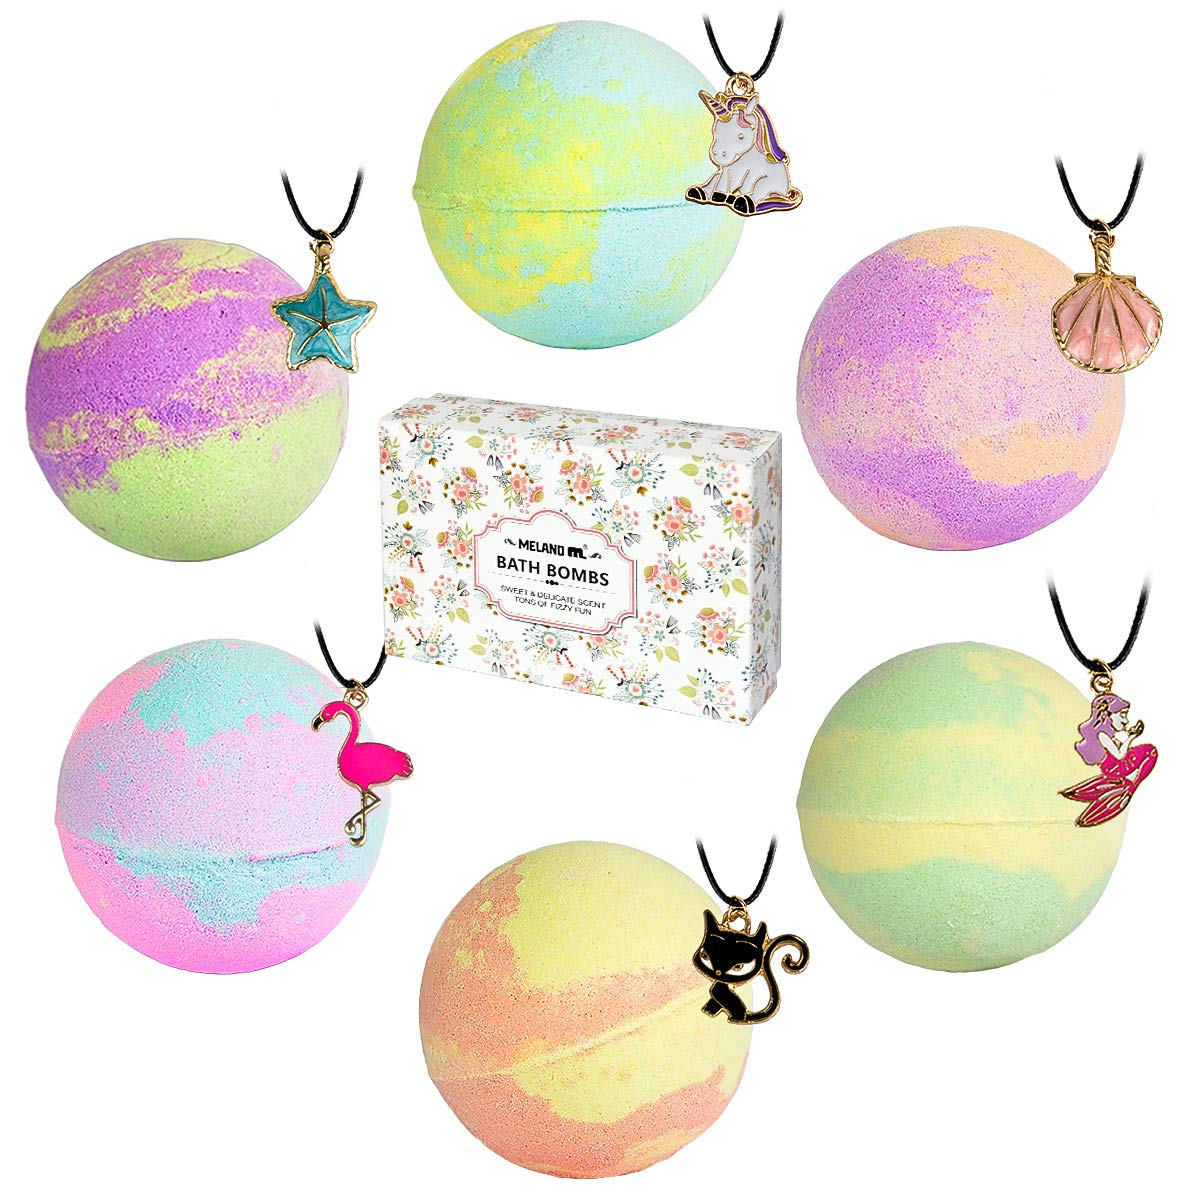 Bath Bombs with Surprise Necklaces – 6 * 5.5 oz Bubble Bath Fizzies for Kids Unicorn Bath Bombs Gift Set for Women Girls Birthday Christmas Anniversary Meland